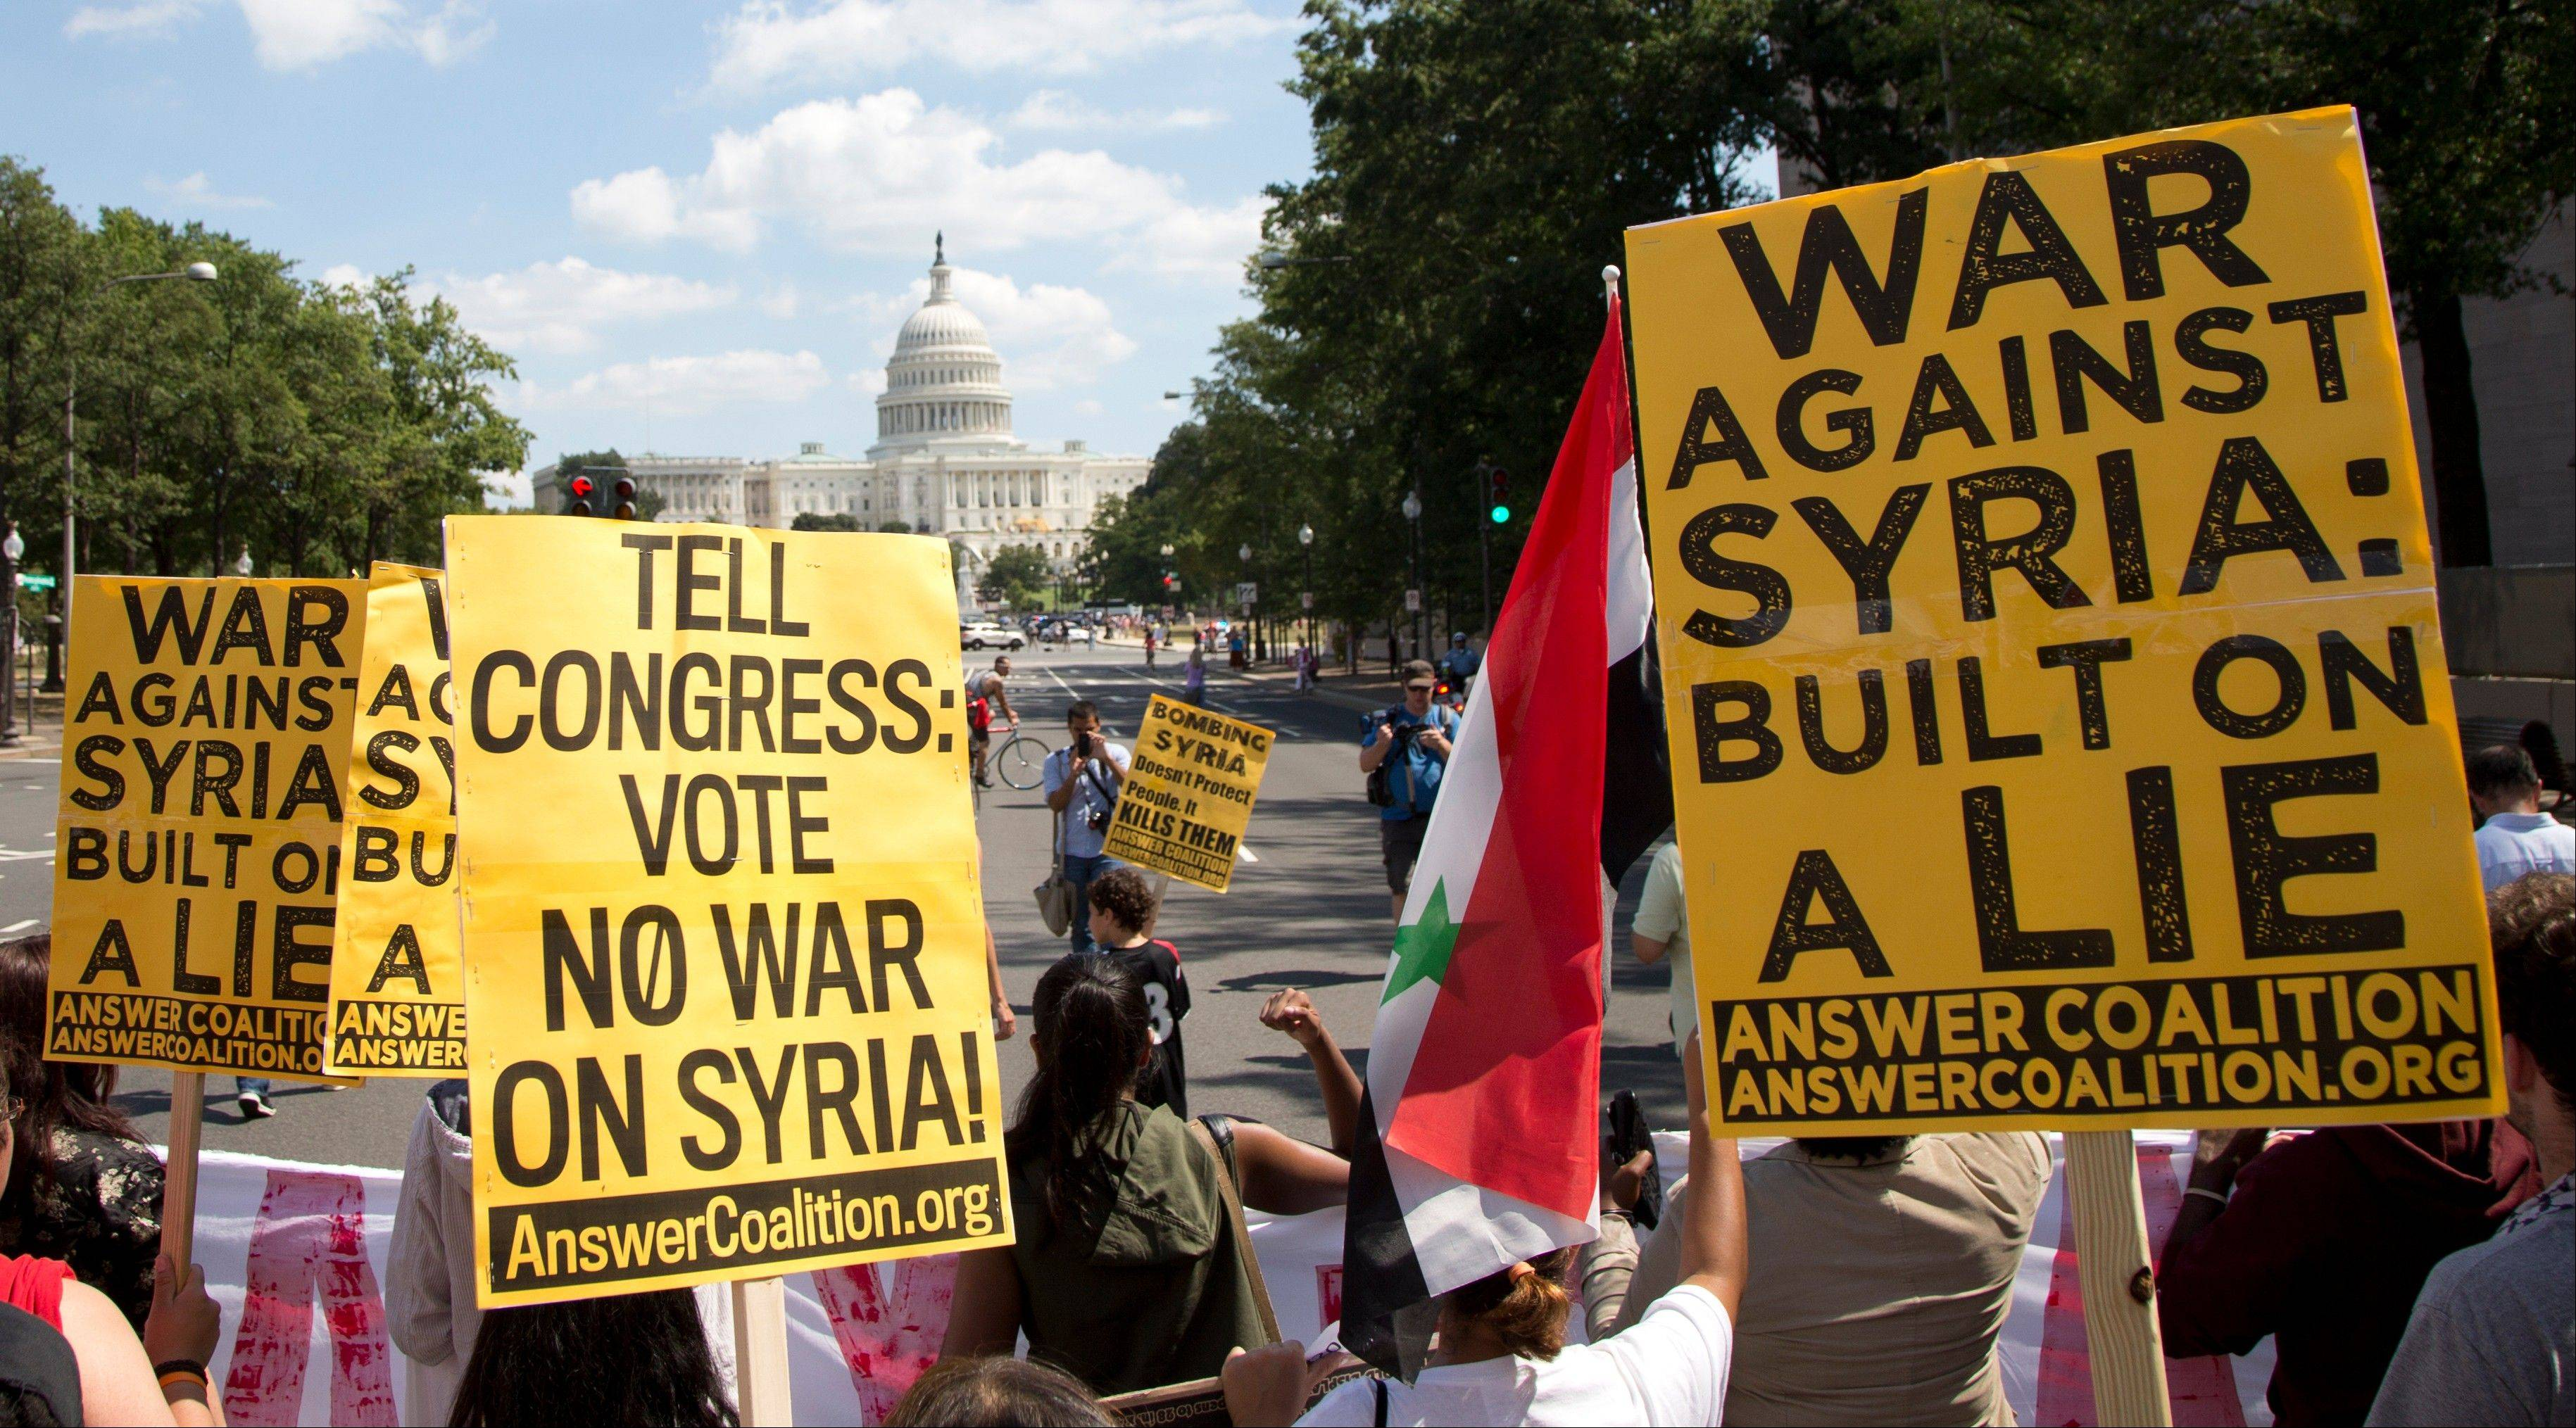 Protesters against U.S. military action in Syria march to Capitol Hill Saturday from the White House in Washington.